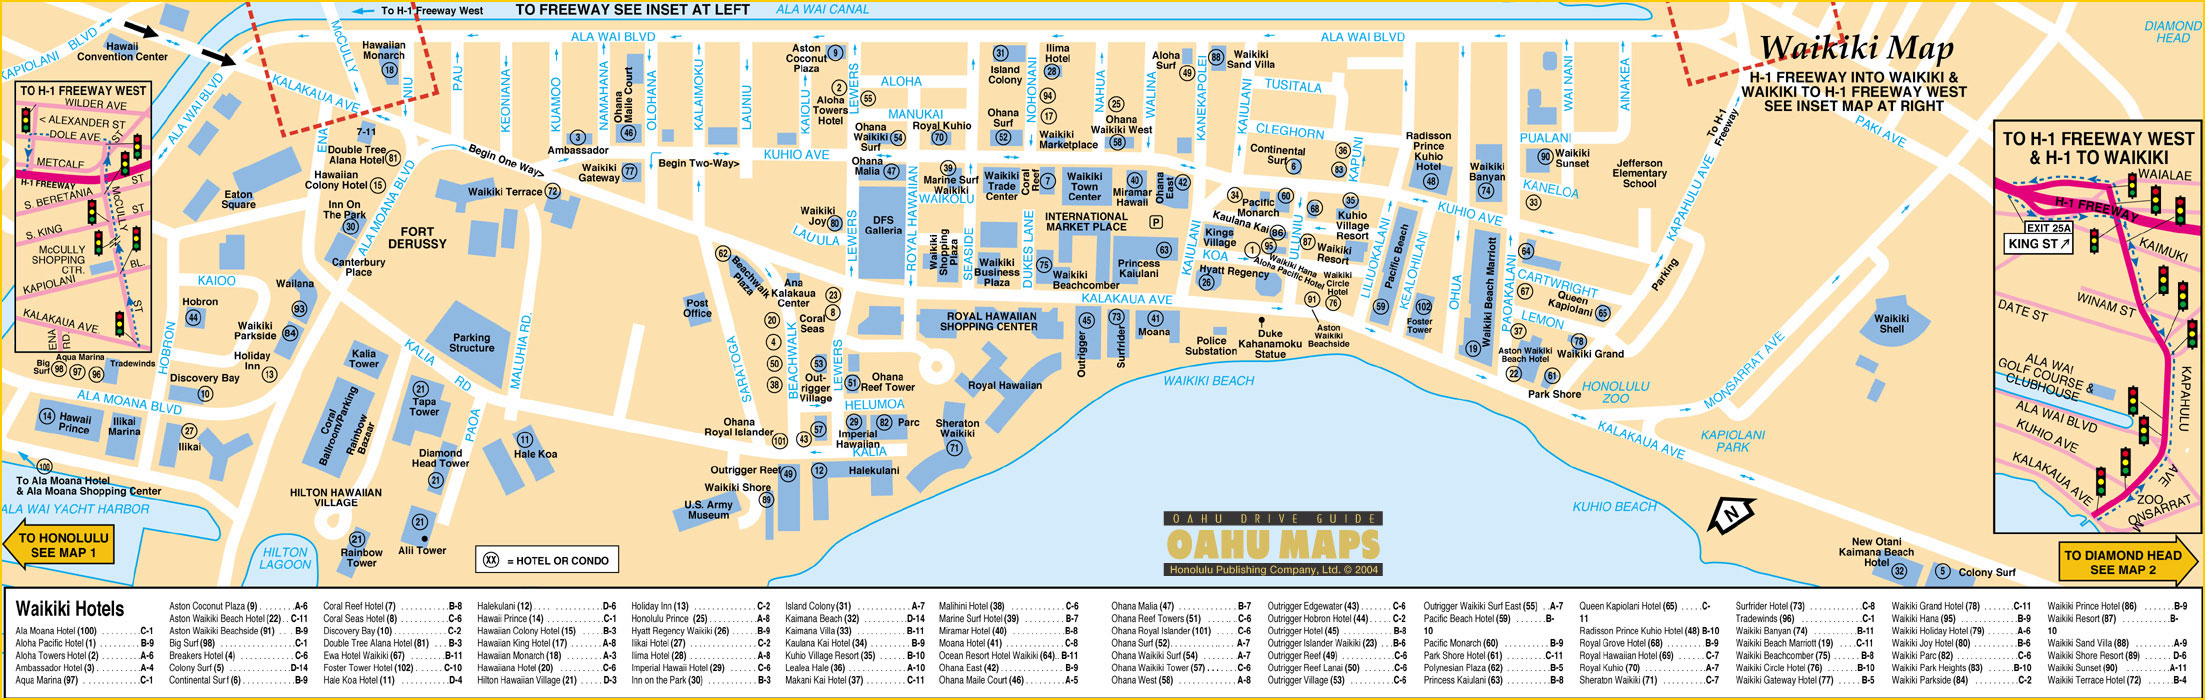 Waikiki Hawaii Spring Break 2017 Destinations Break Now – Tourist Map Of Nashville